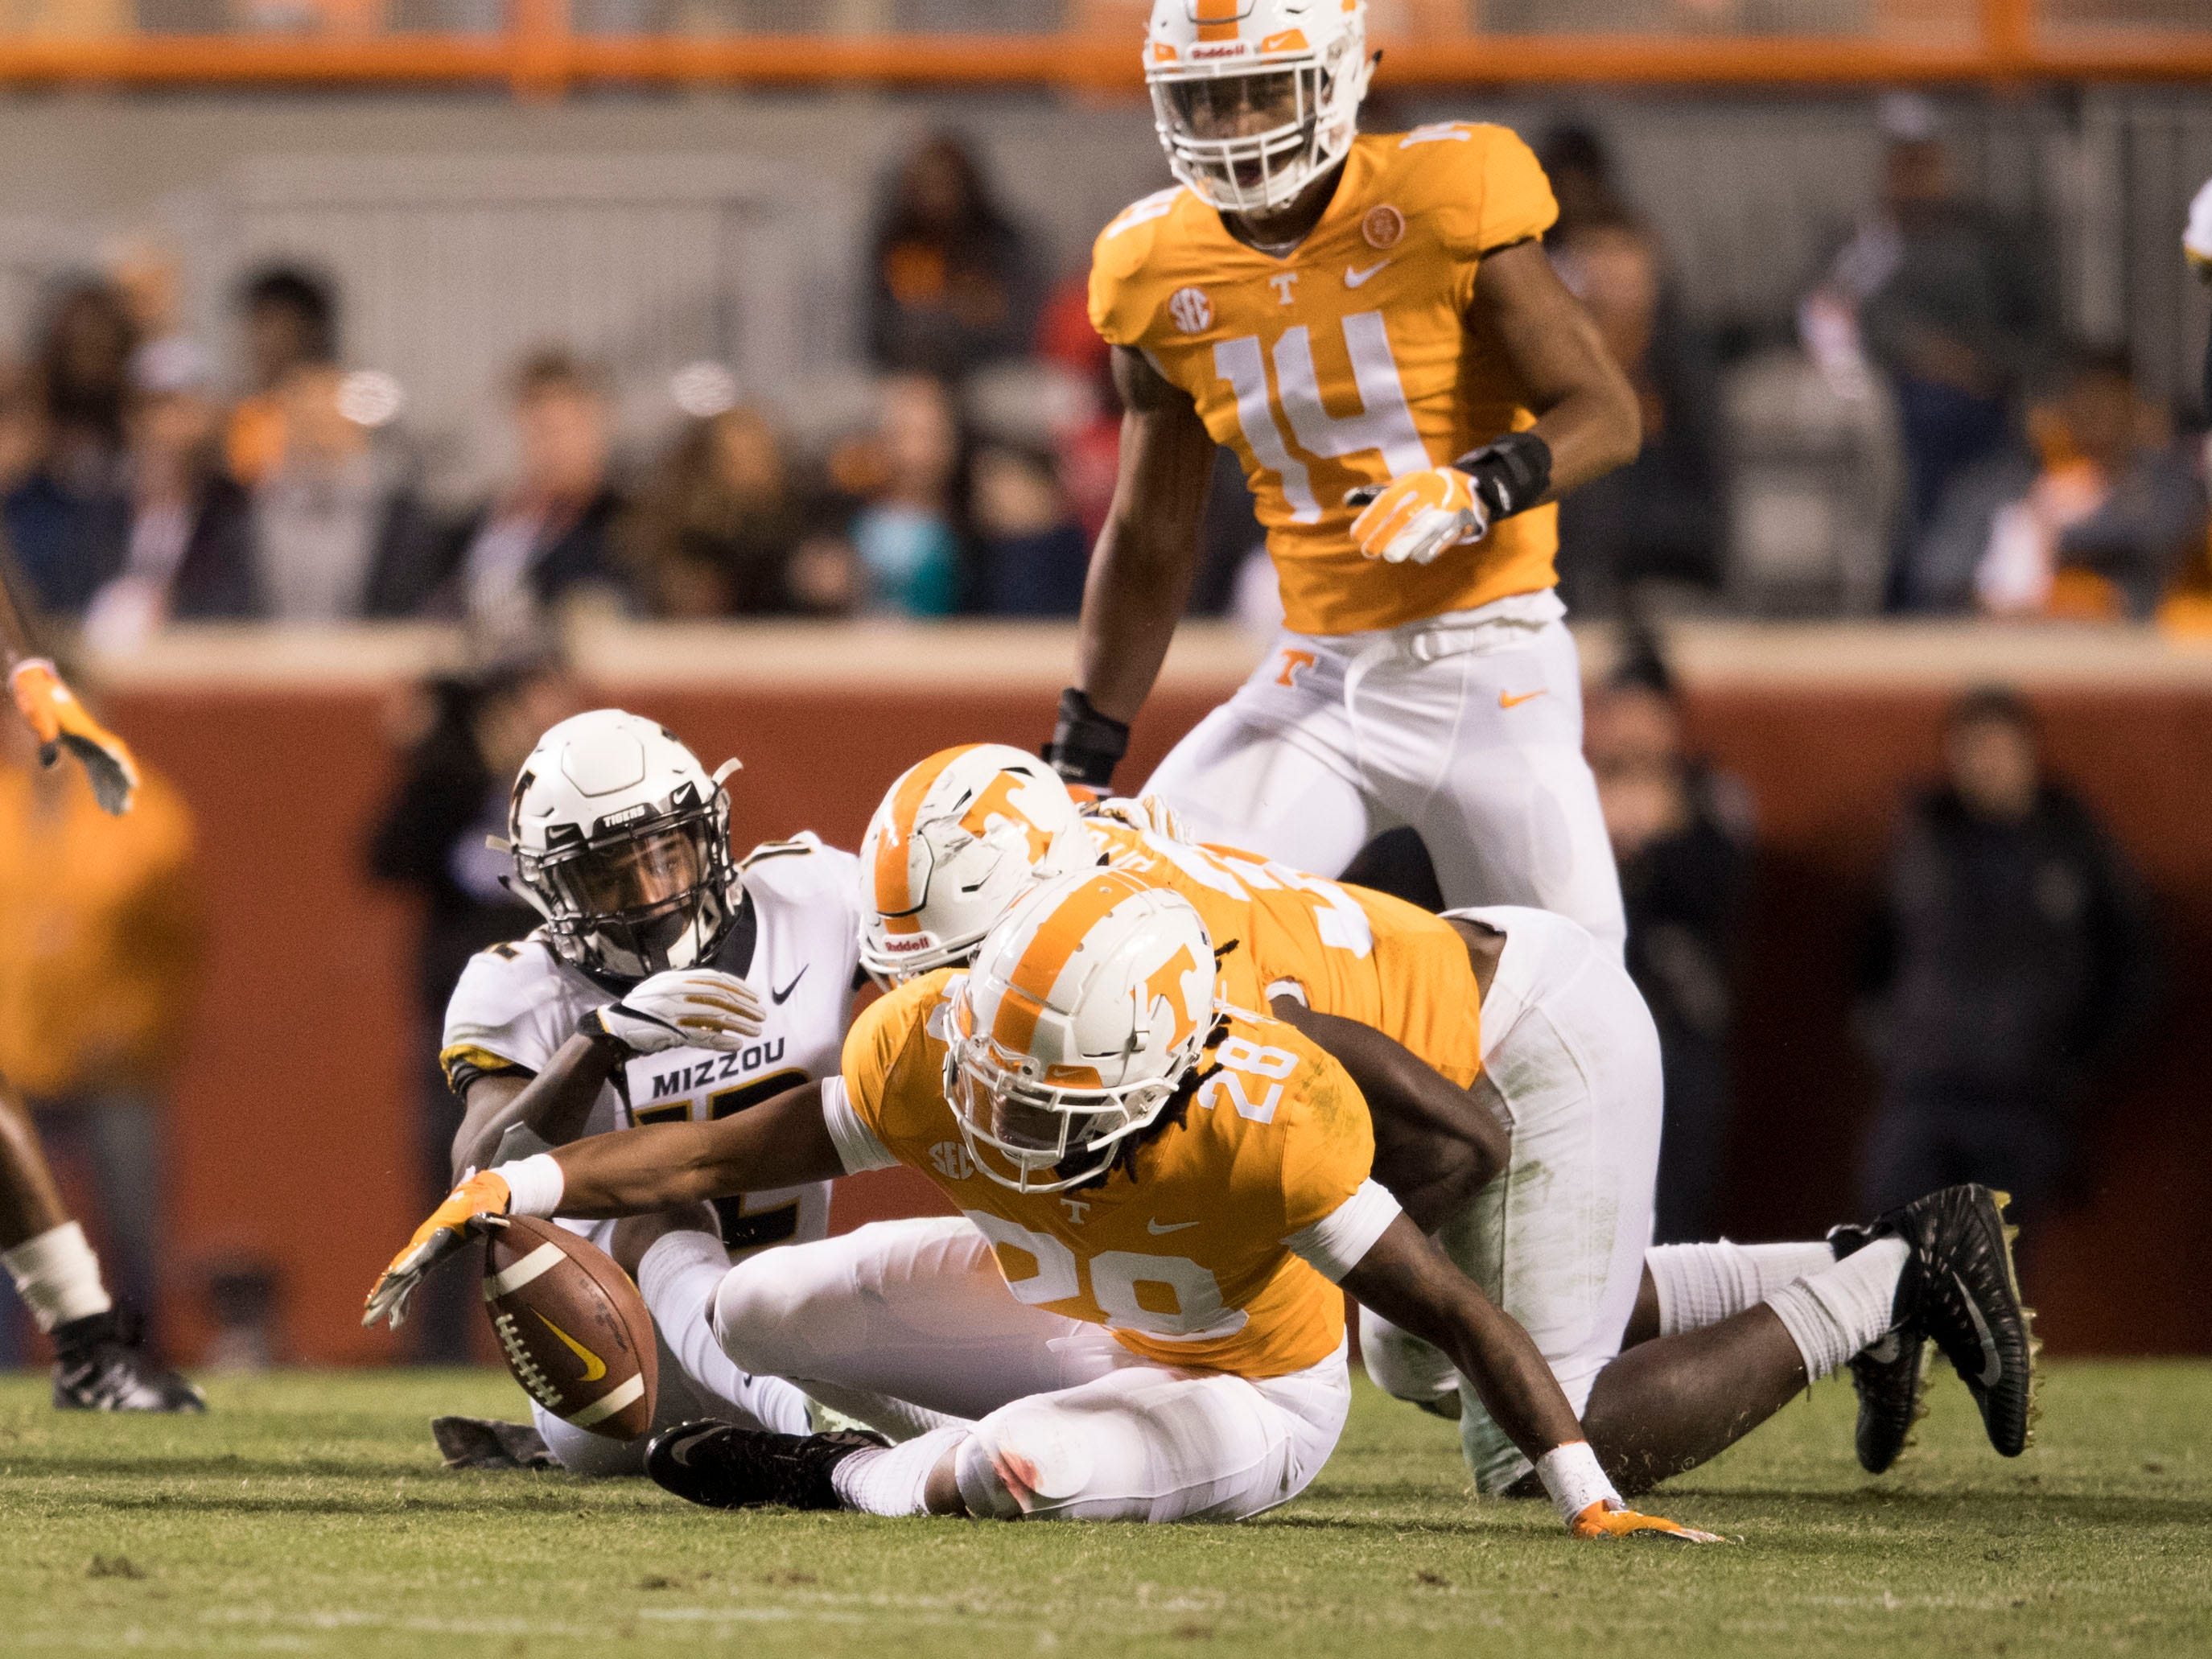 Tennessee defensive back Baylen Buchanan (28) recovers a fumble during the Tennessee and Missouri football game on Saturday, November 17, 2018.